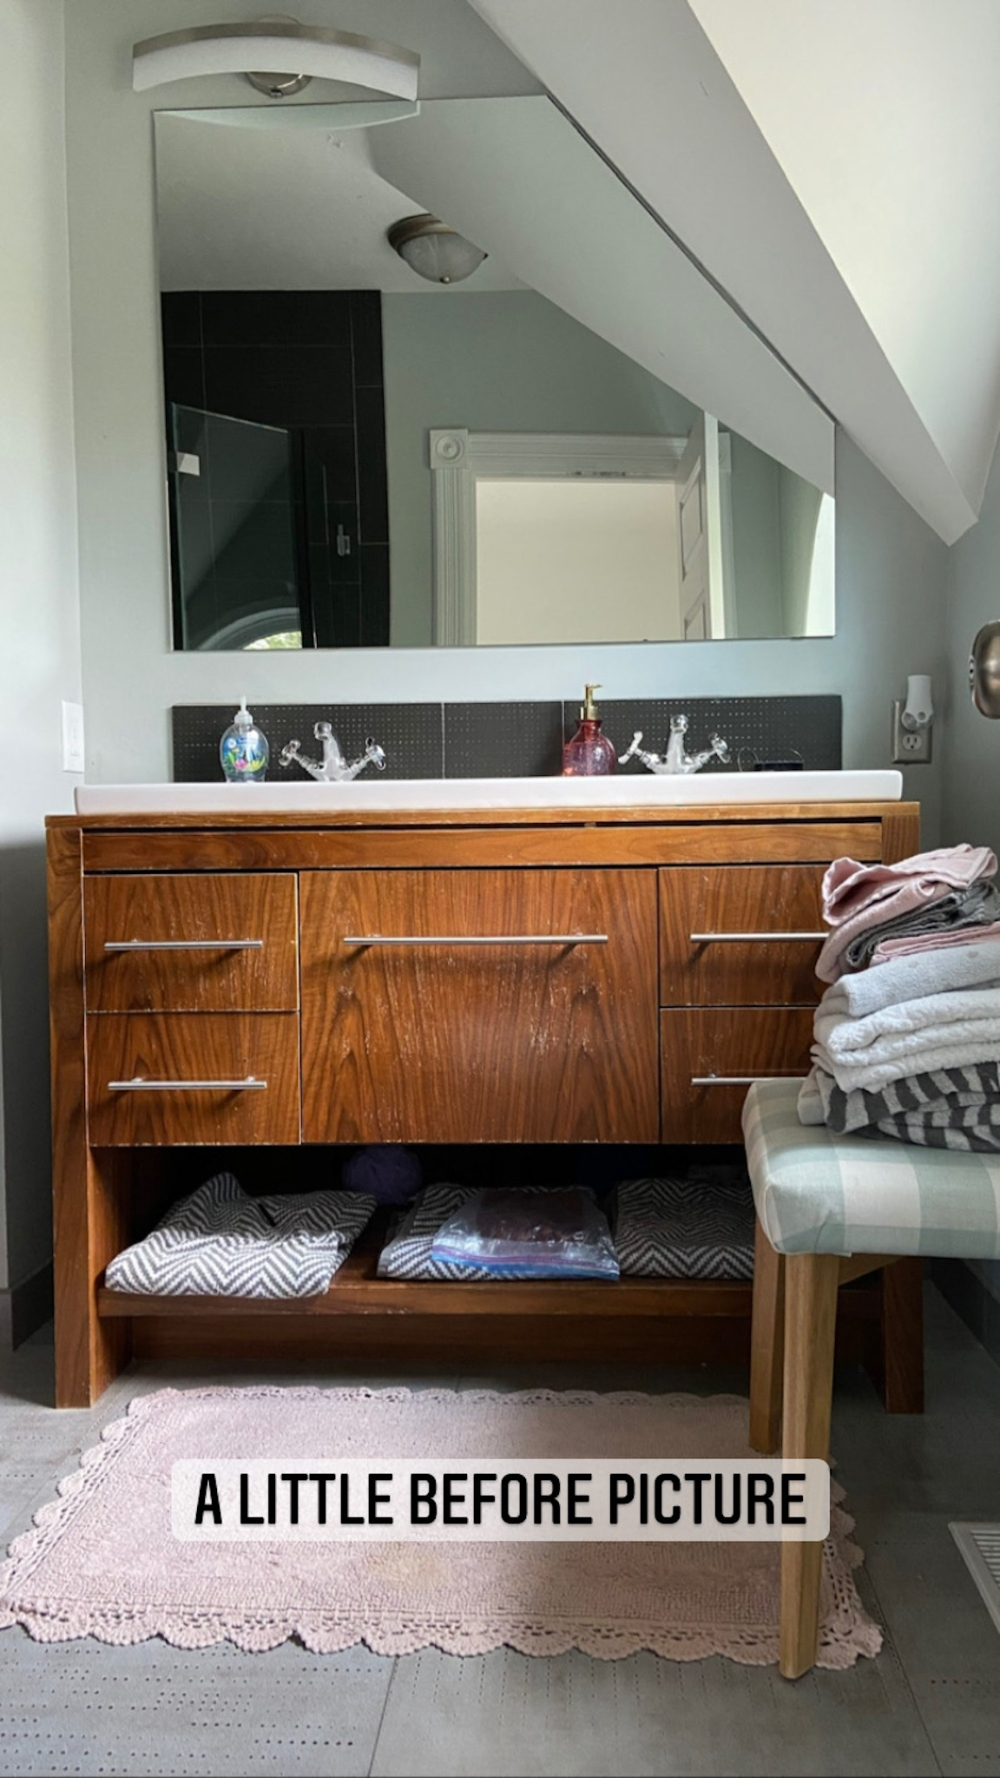 Welcome Home Saturday with At Home in the Wildwood. DIY projects, bathroom remodel update and things I love this week!